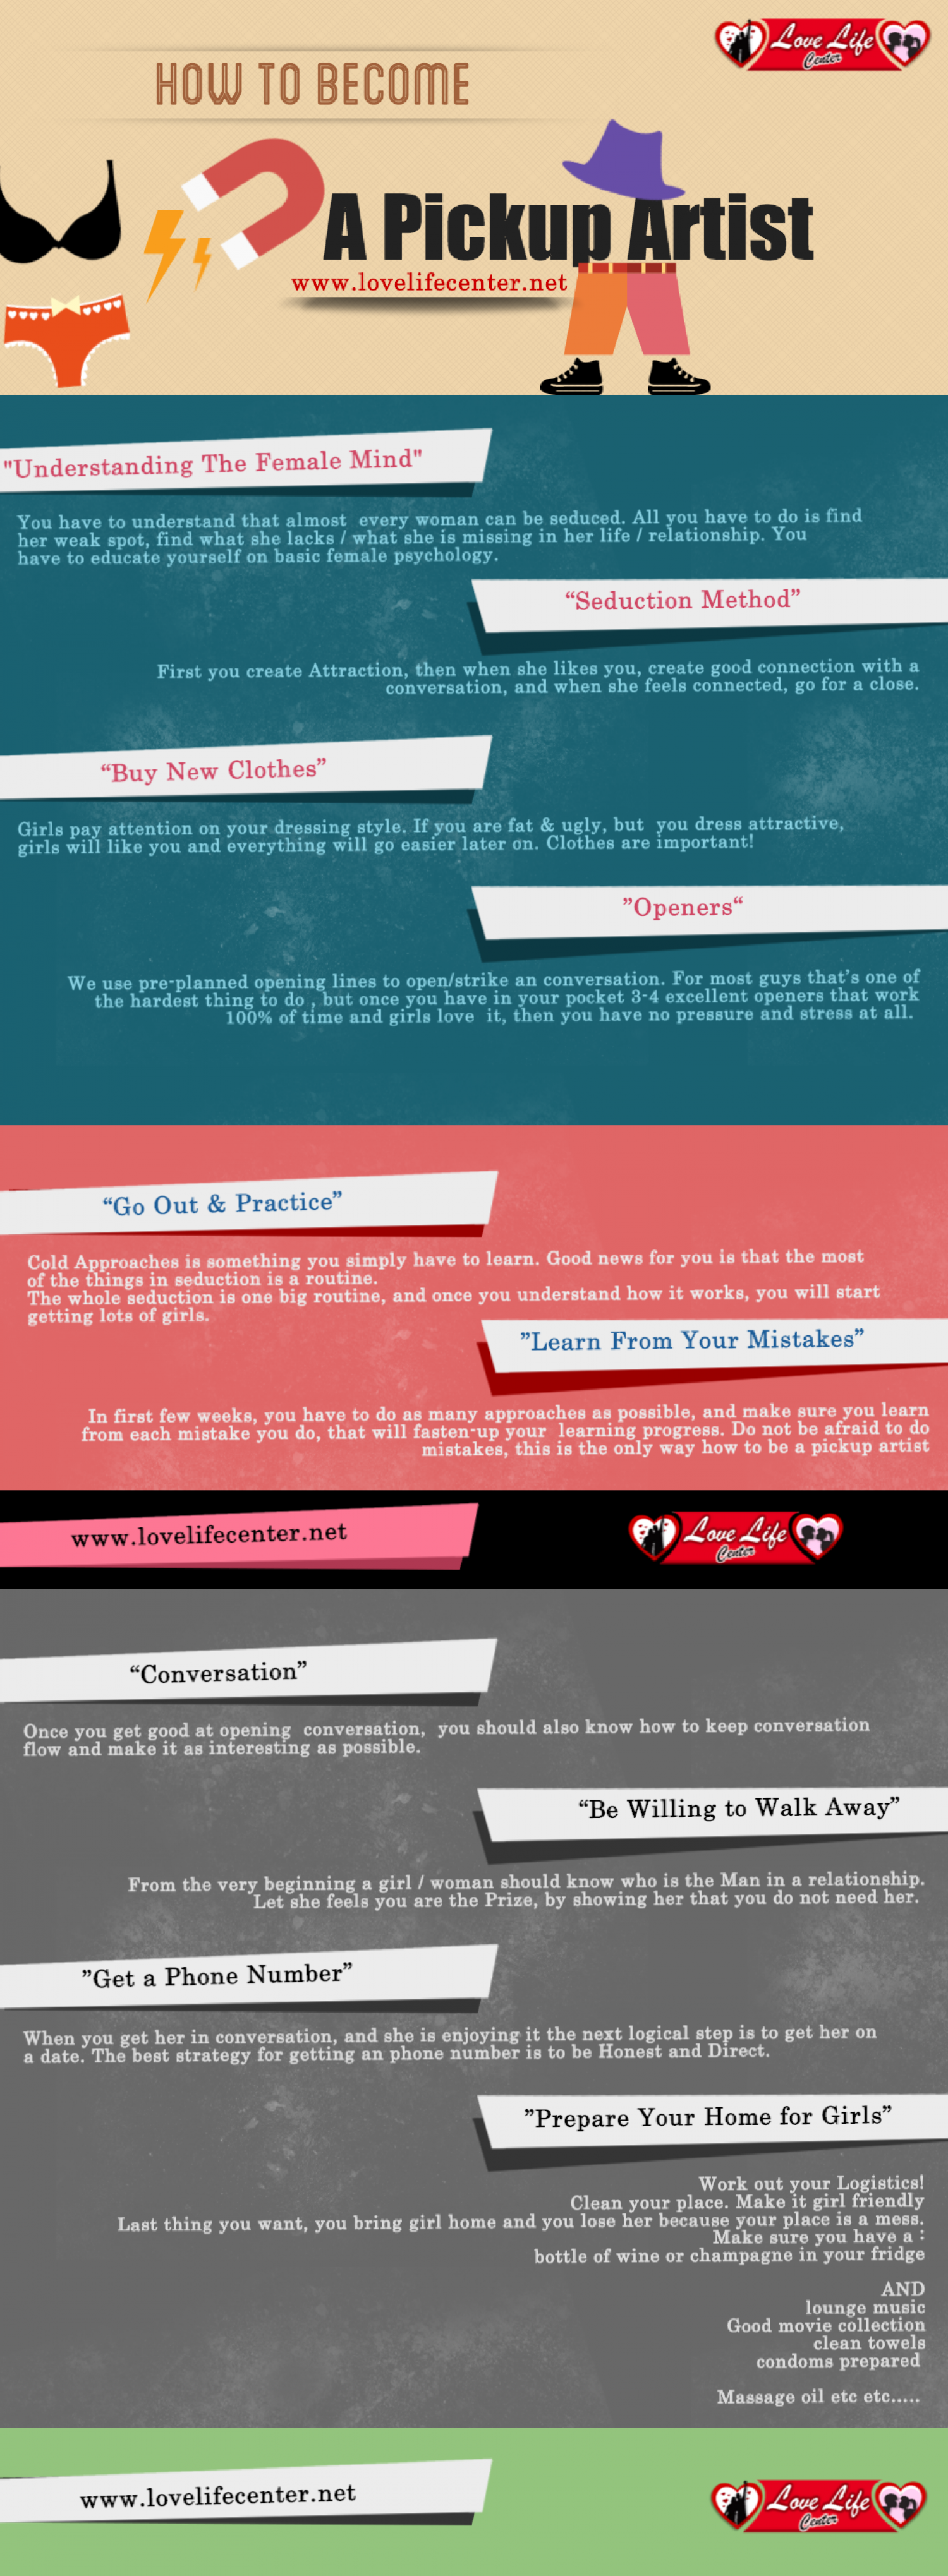 How to Become A Pickup Artist Infographic